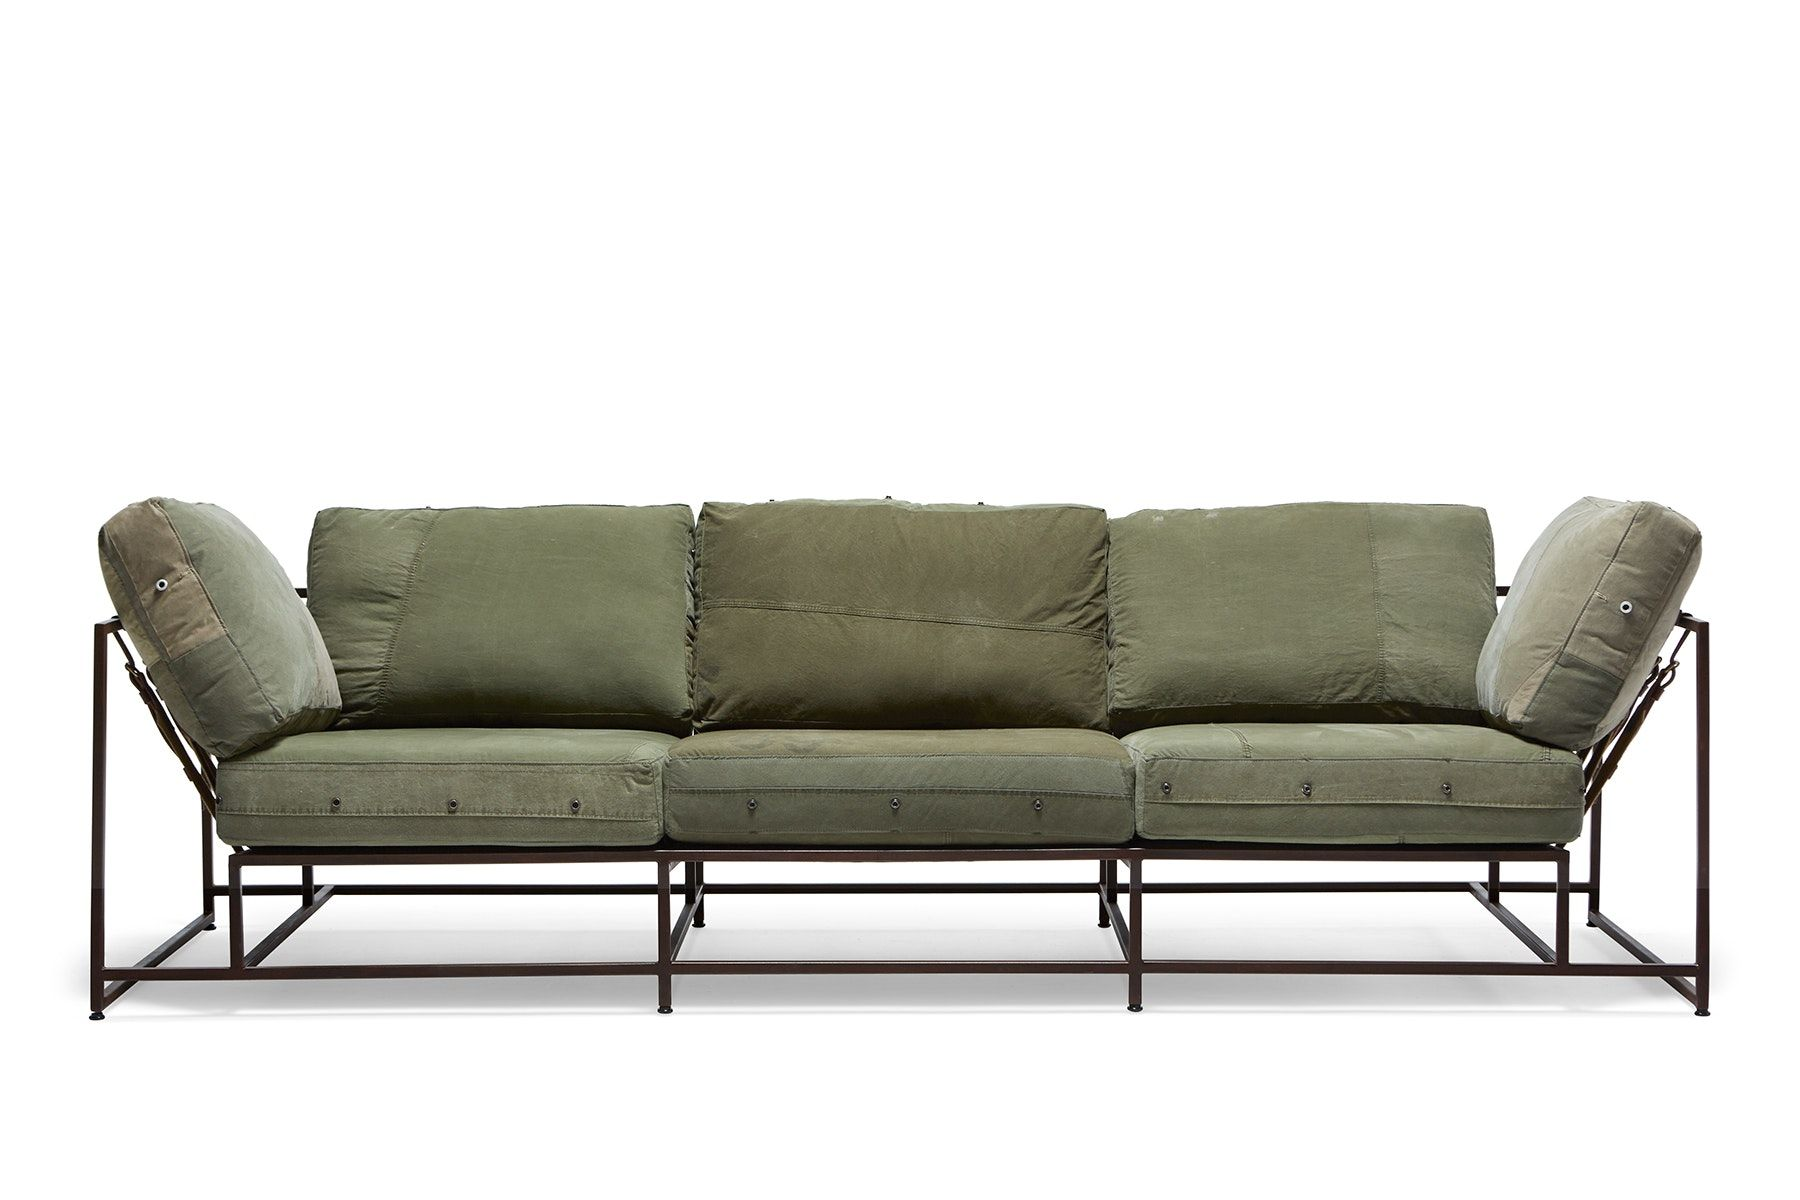 Buy Inheritance Collection Military Canvas Sofa by Stephen Kenn